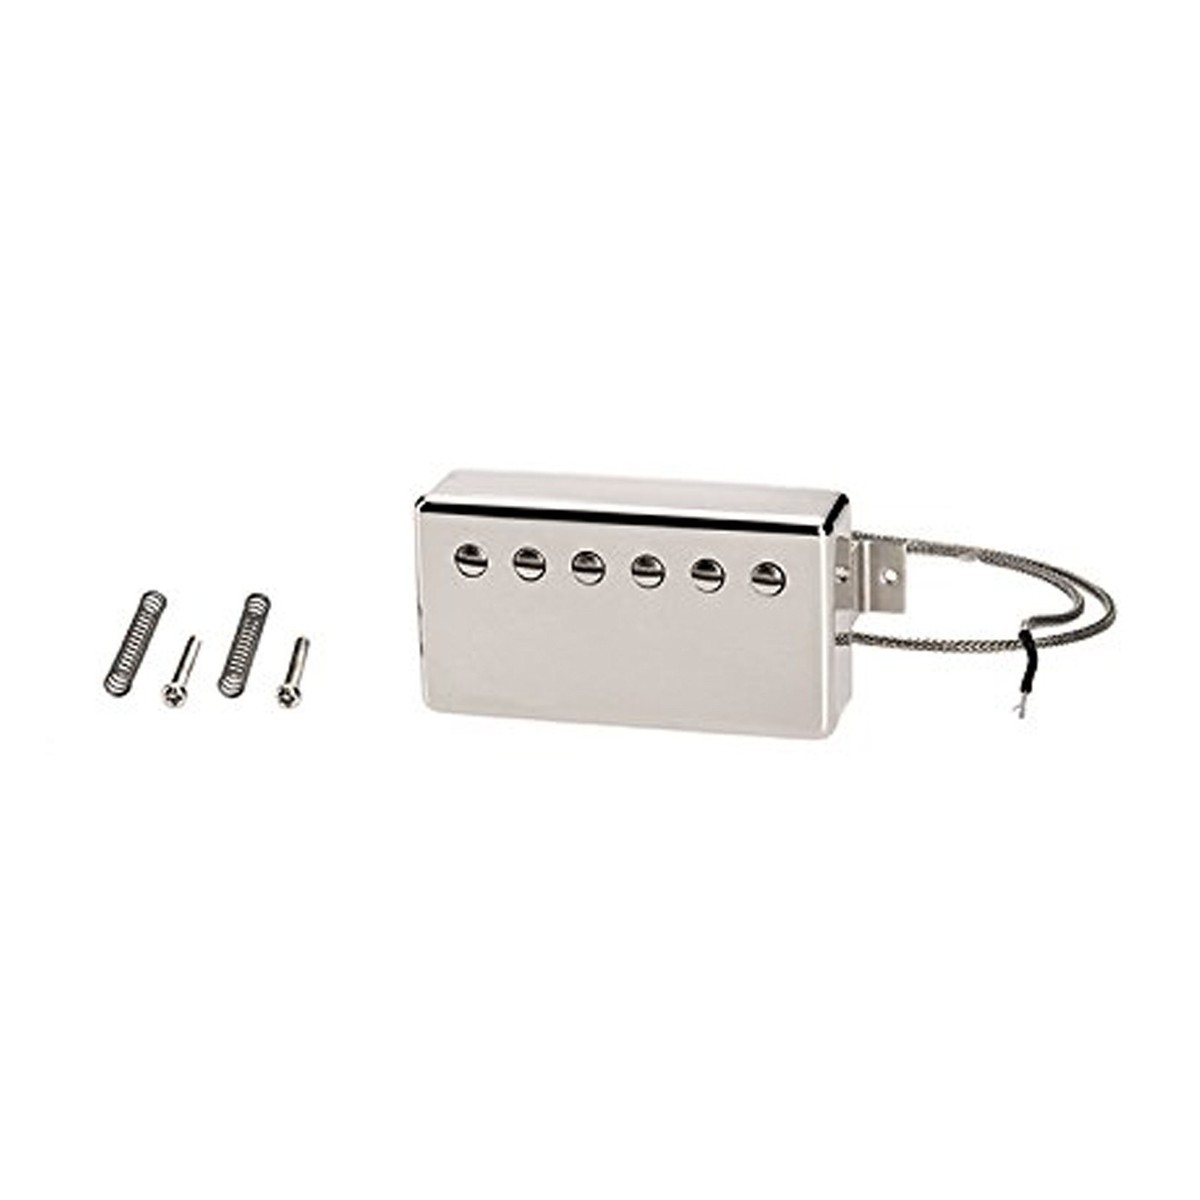 Gibson 57 Classic Humbucker Pickup, Nickel Cover bei Gear4music